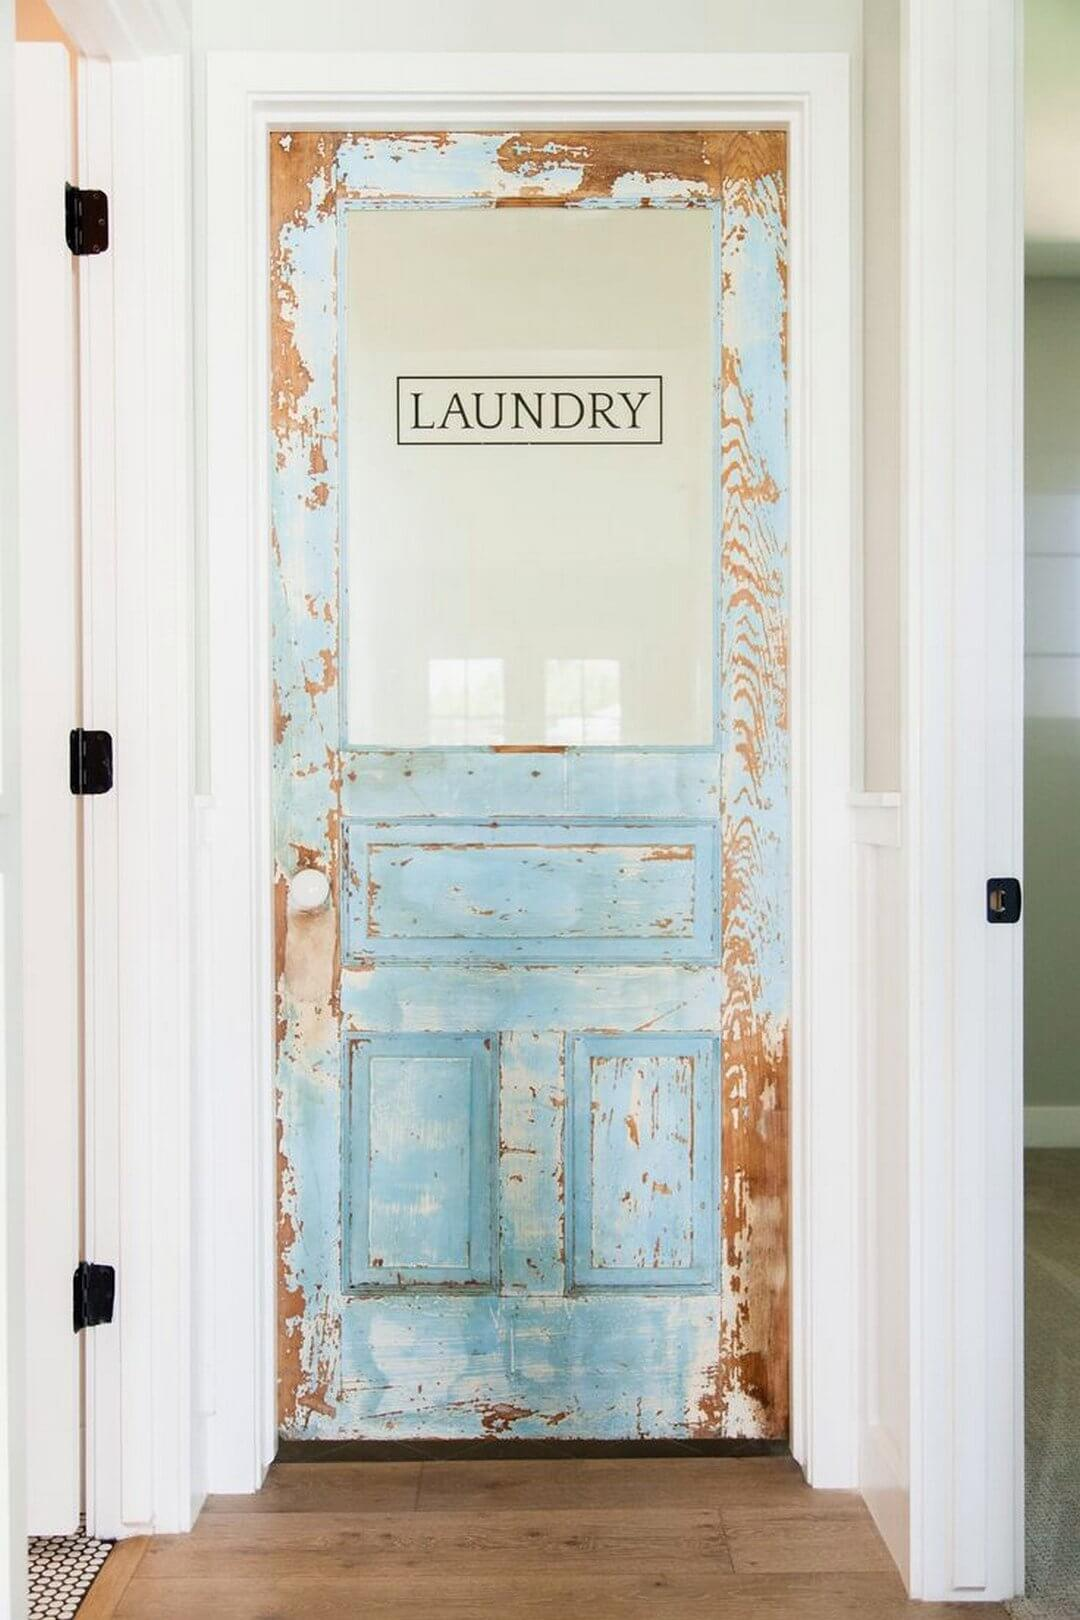 Reclaimed Wood Door for the Laundry Room